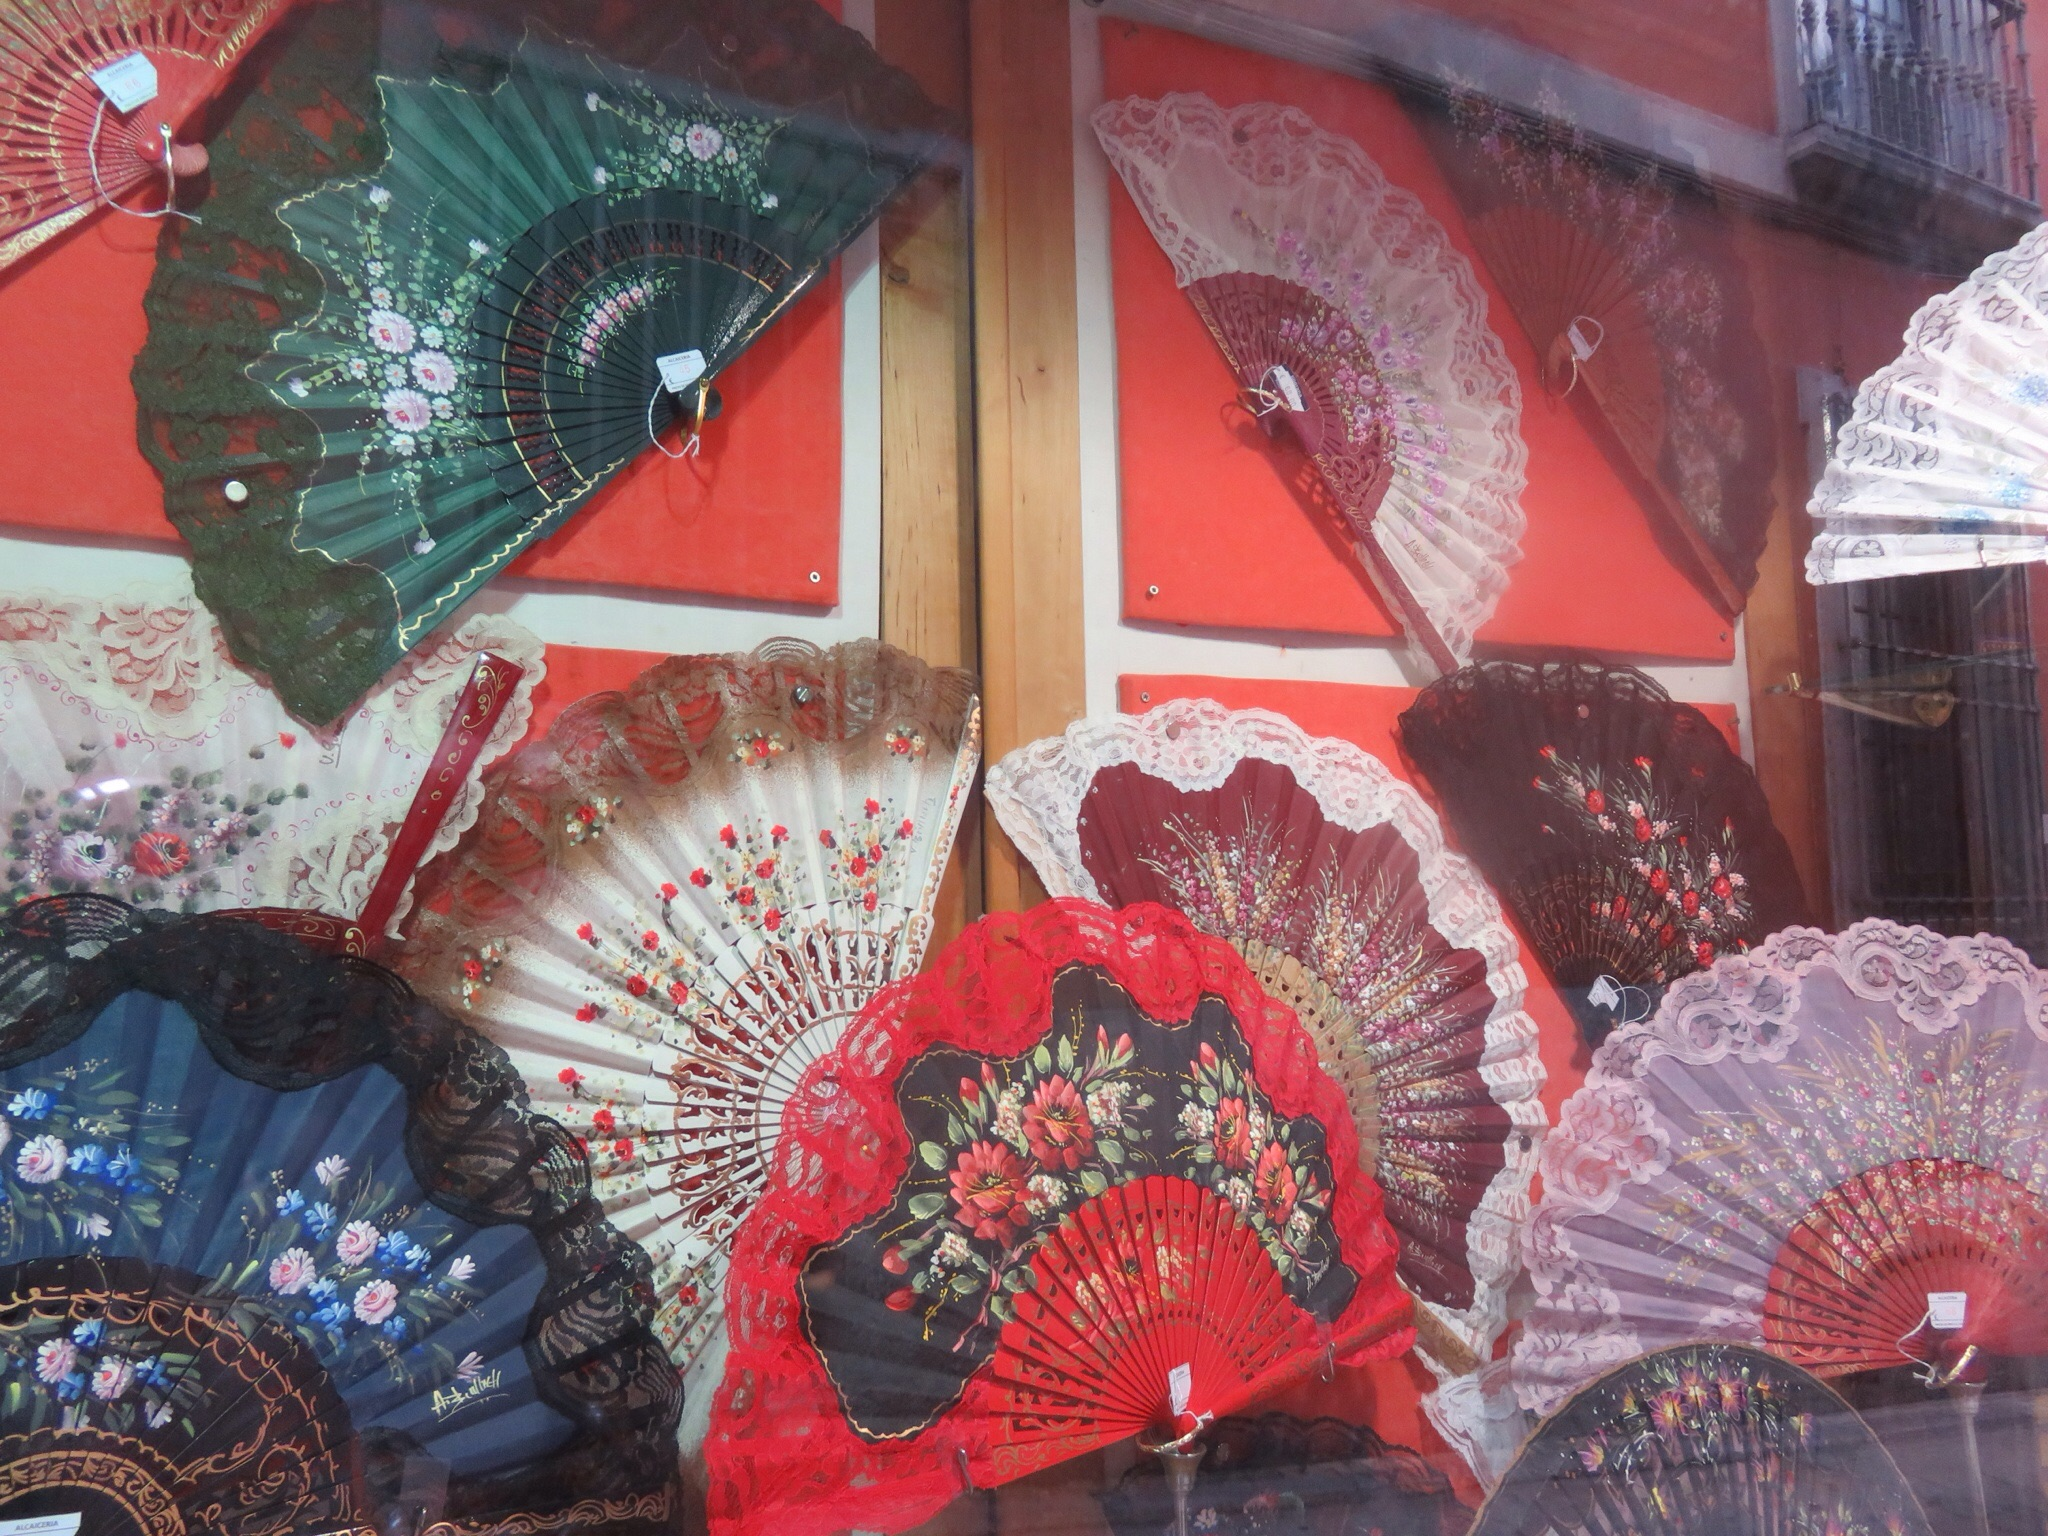 Shop selling handmade fans